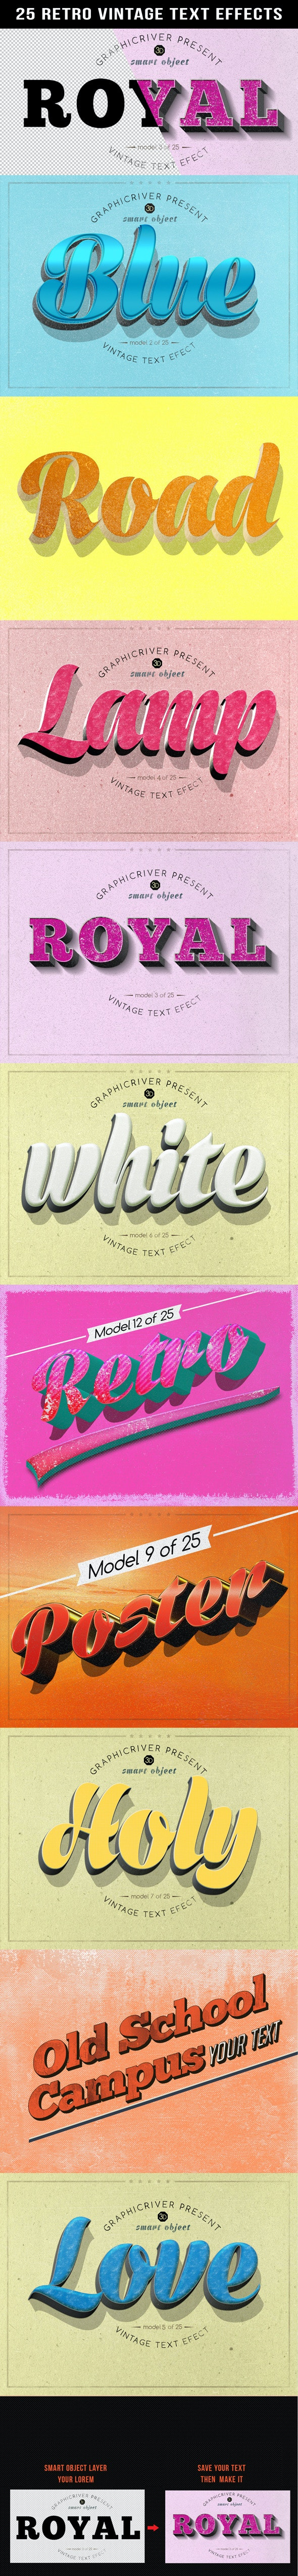 Retro Vintage Text Effects - Text Effects Styles